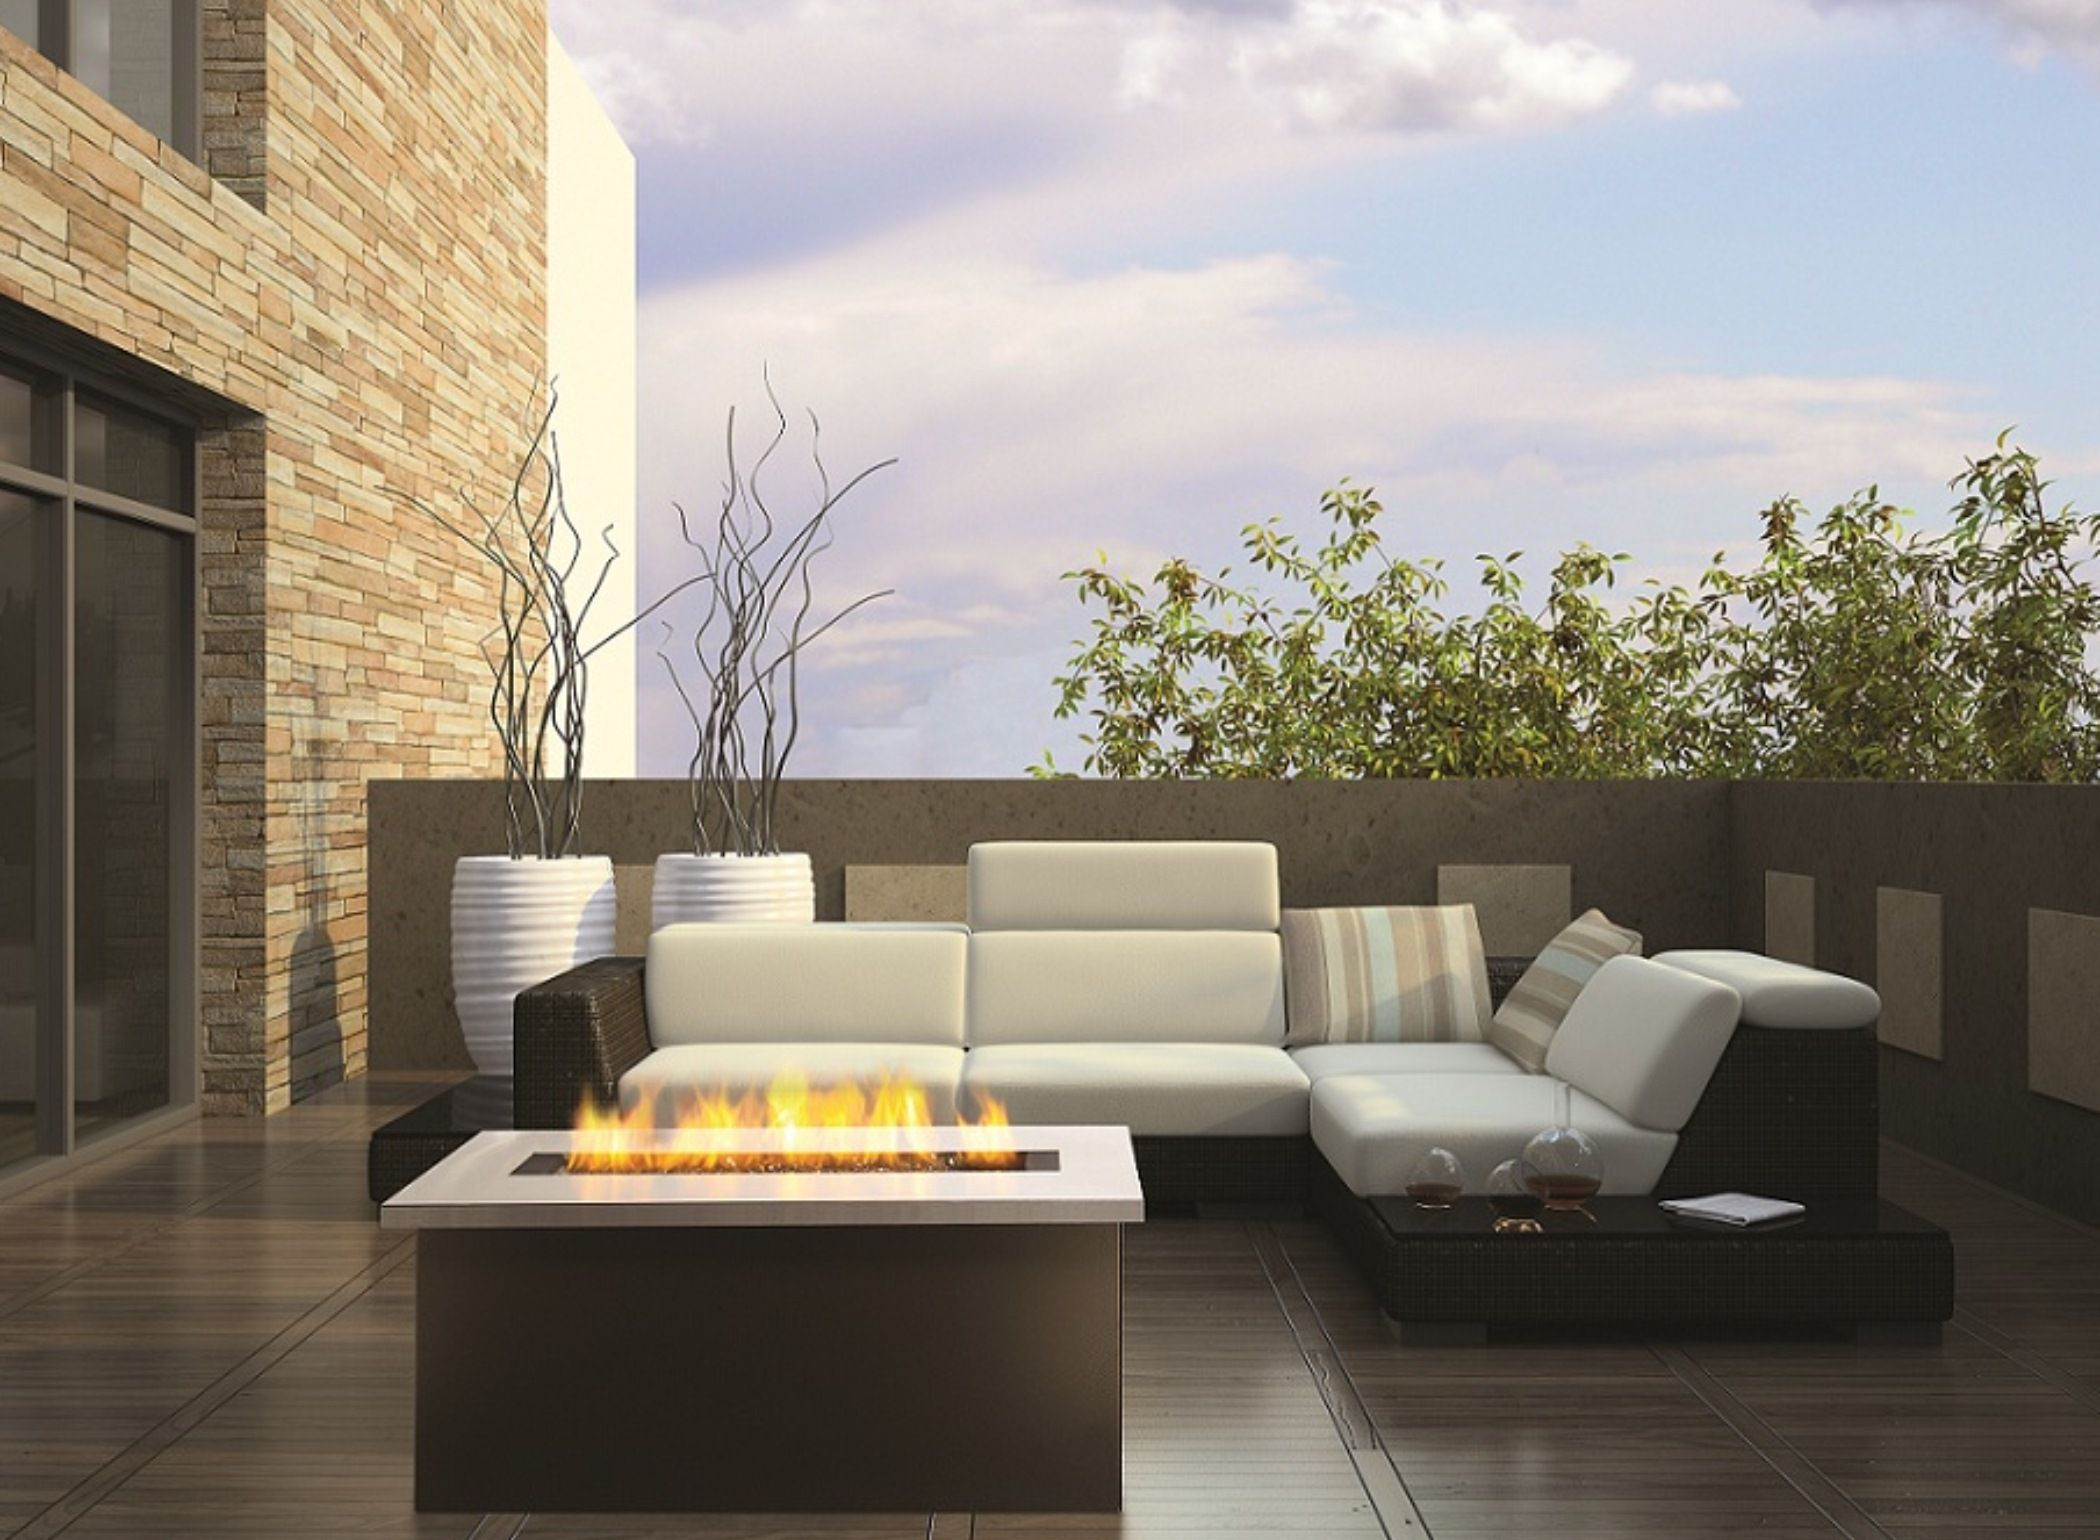 Decorate Minimalist Deck with Stunning Outdoor Fire Pit Ideas and Black Wicker Sectional Soga on Wooden Flooring